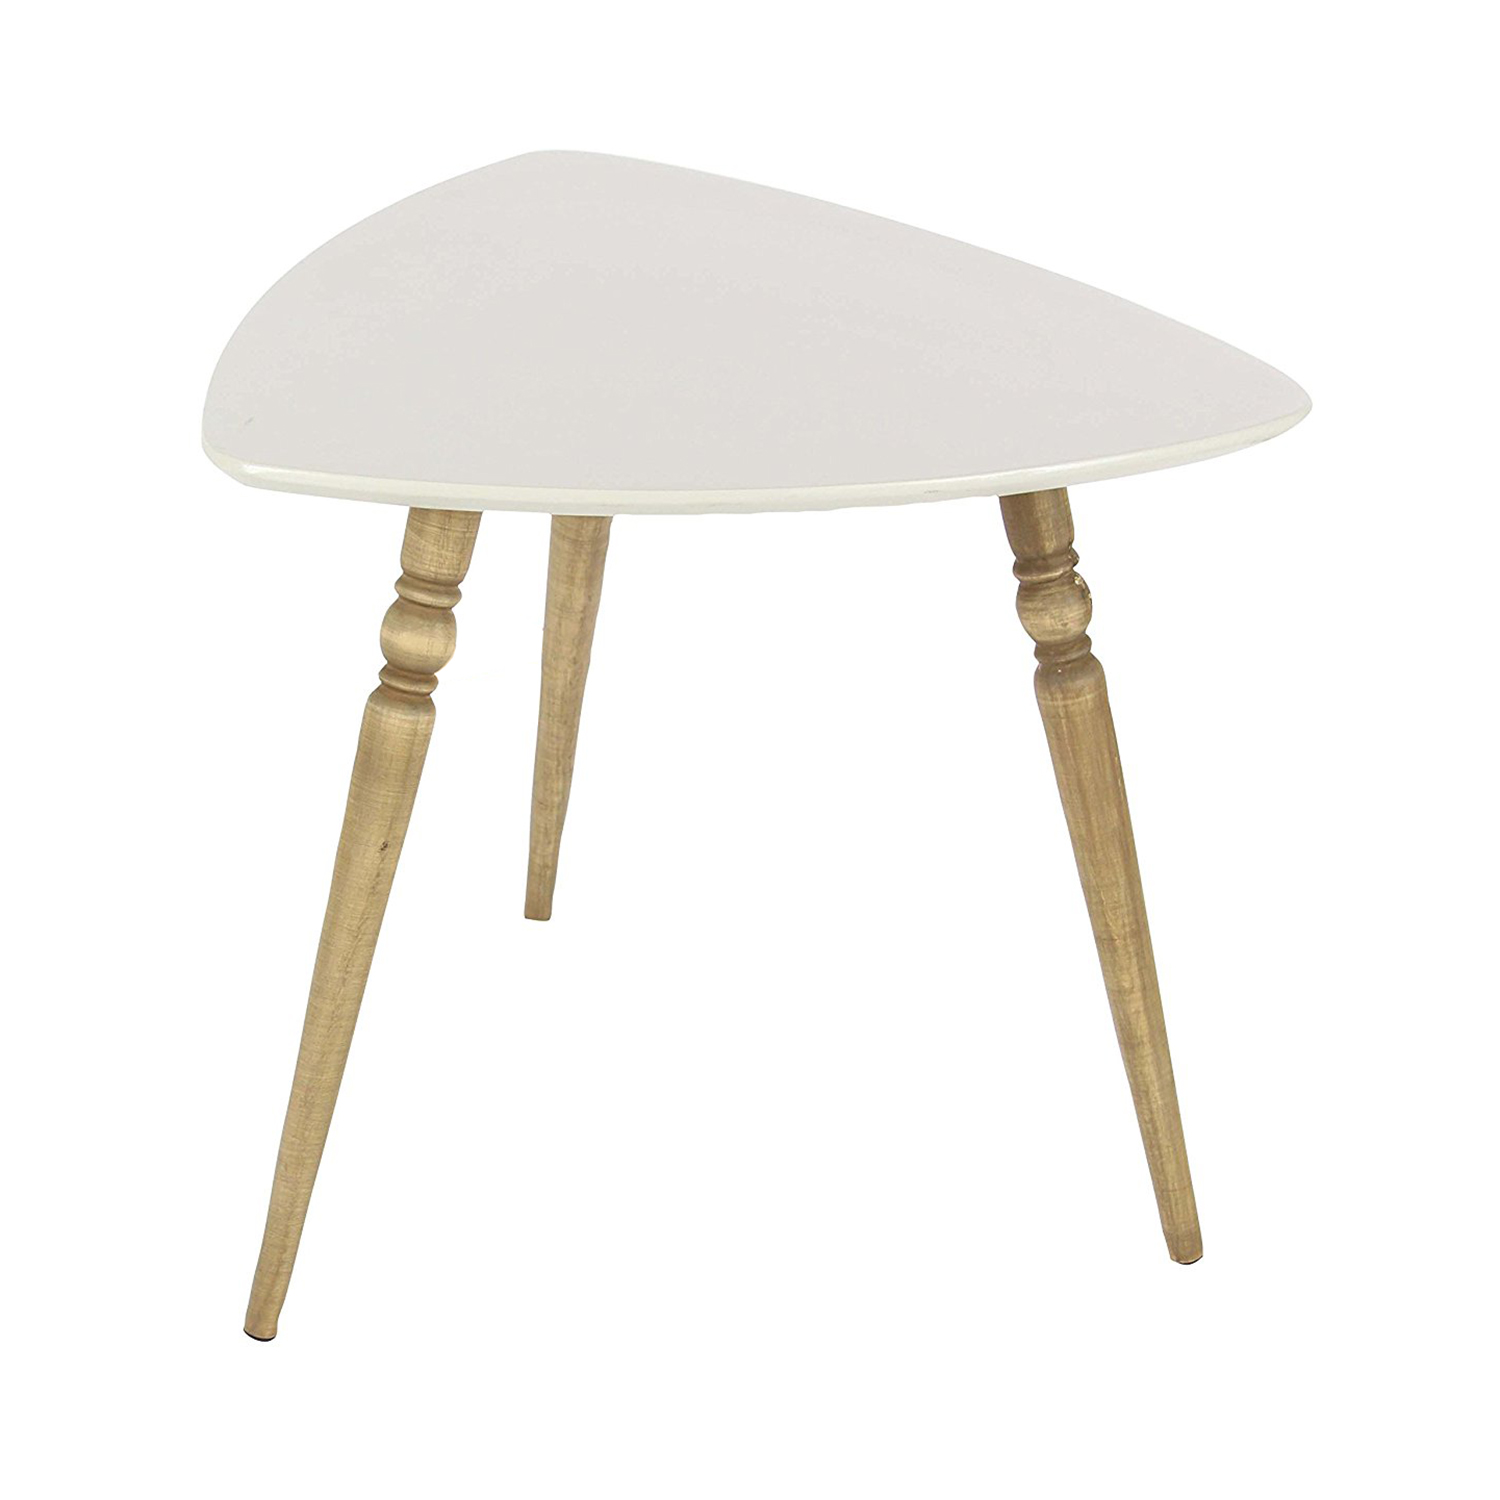 deco rounded triangle white matte finish wooden accent side end living spaces tables table stand large ginger jar lamps beach uttermost vintage storage trunks real marble gaming